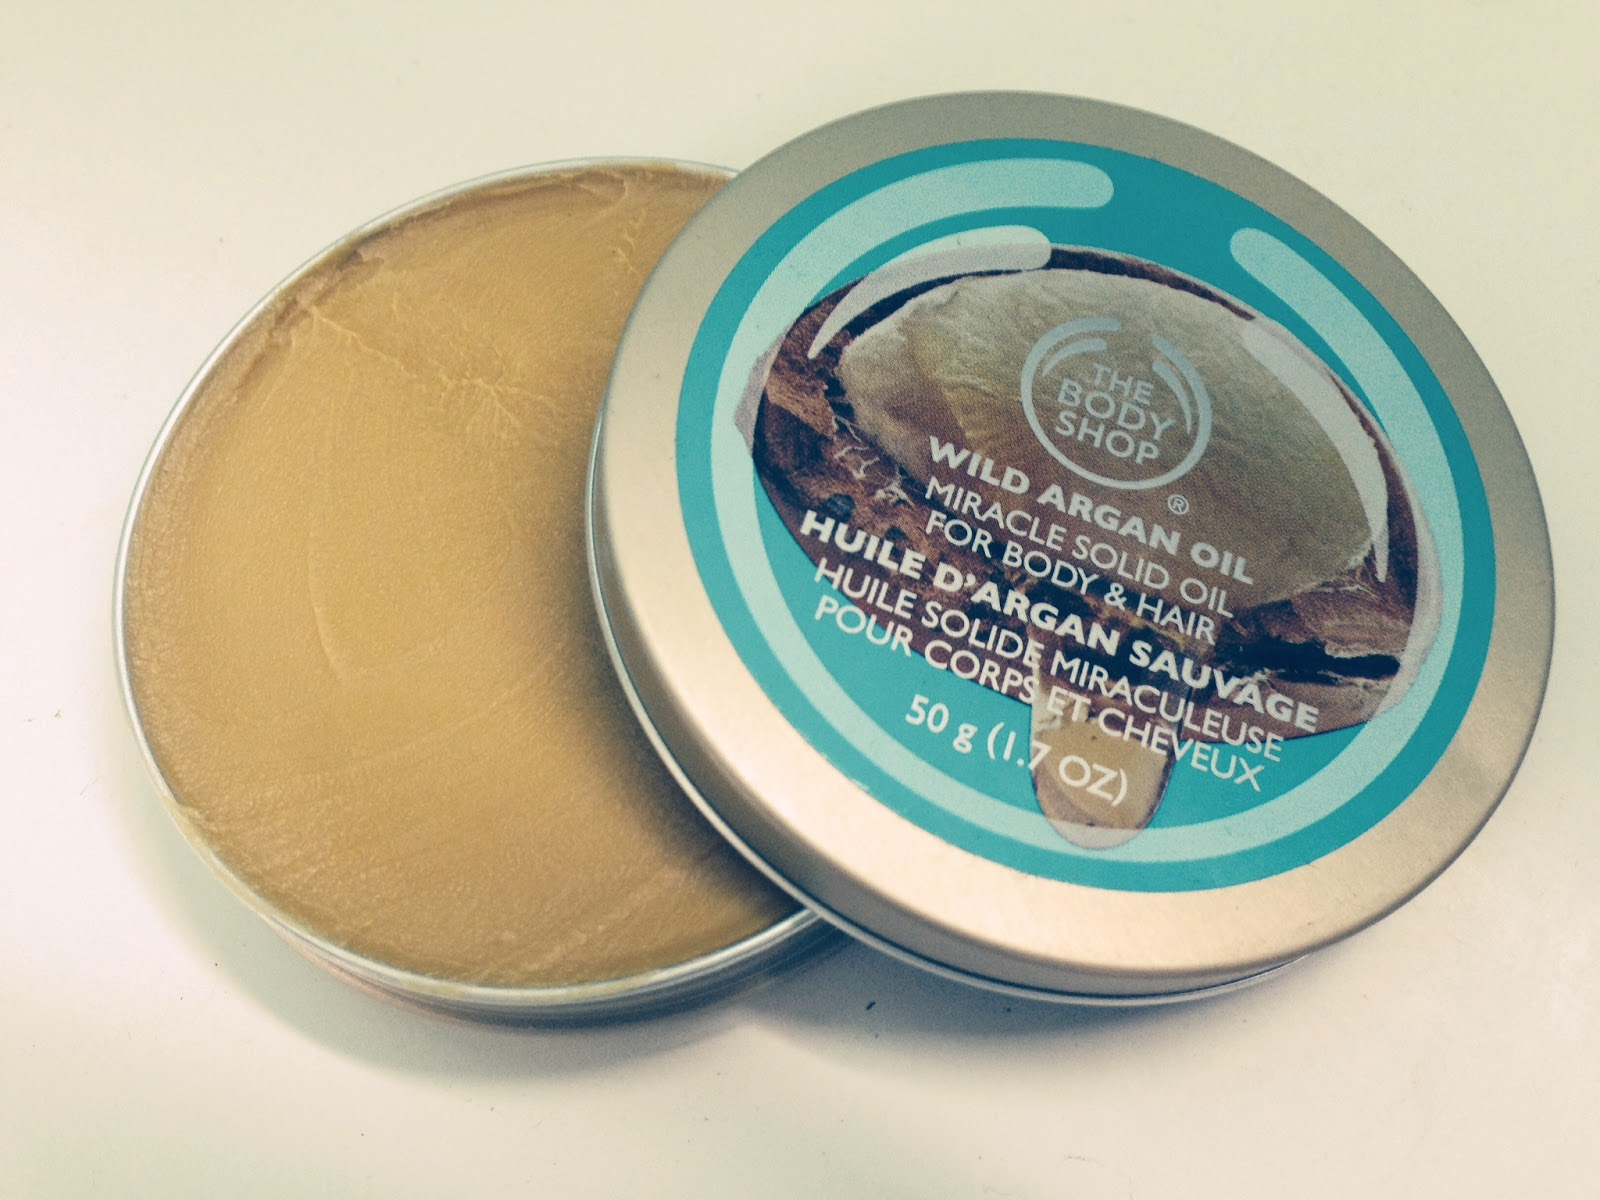 An open tin of Wild Argan Oil by the Body Shop showing the golden balm inside